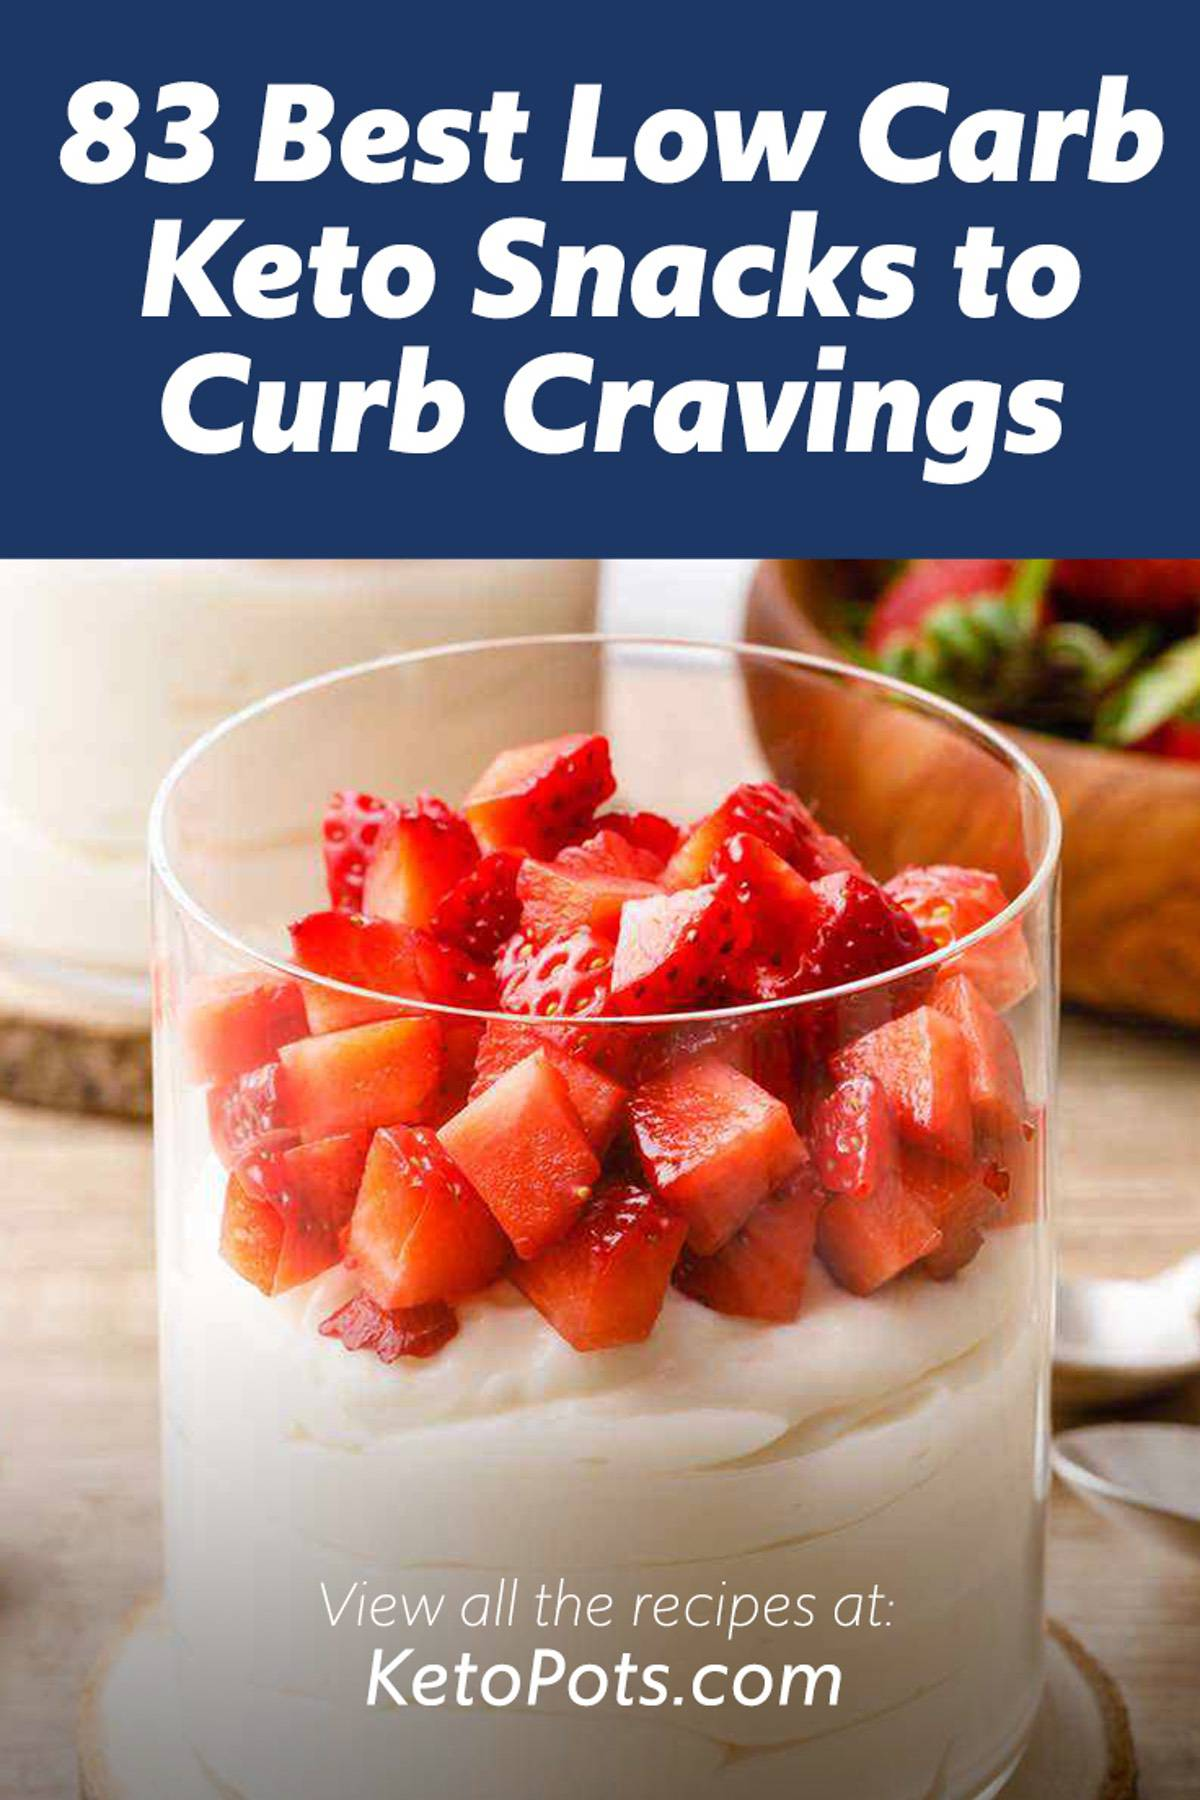 83 Best Low Carb Keto Snacks to Curb Cravings